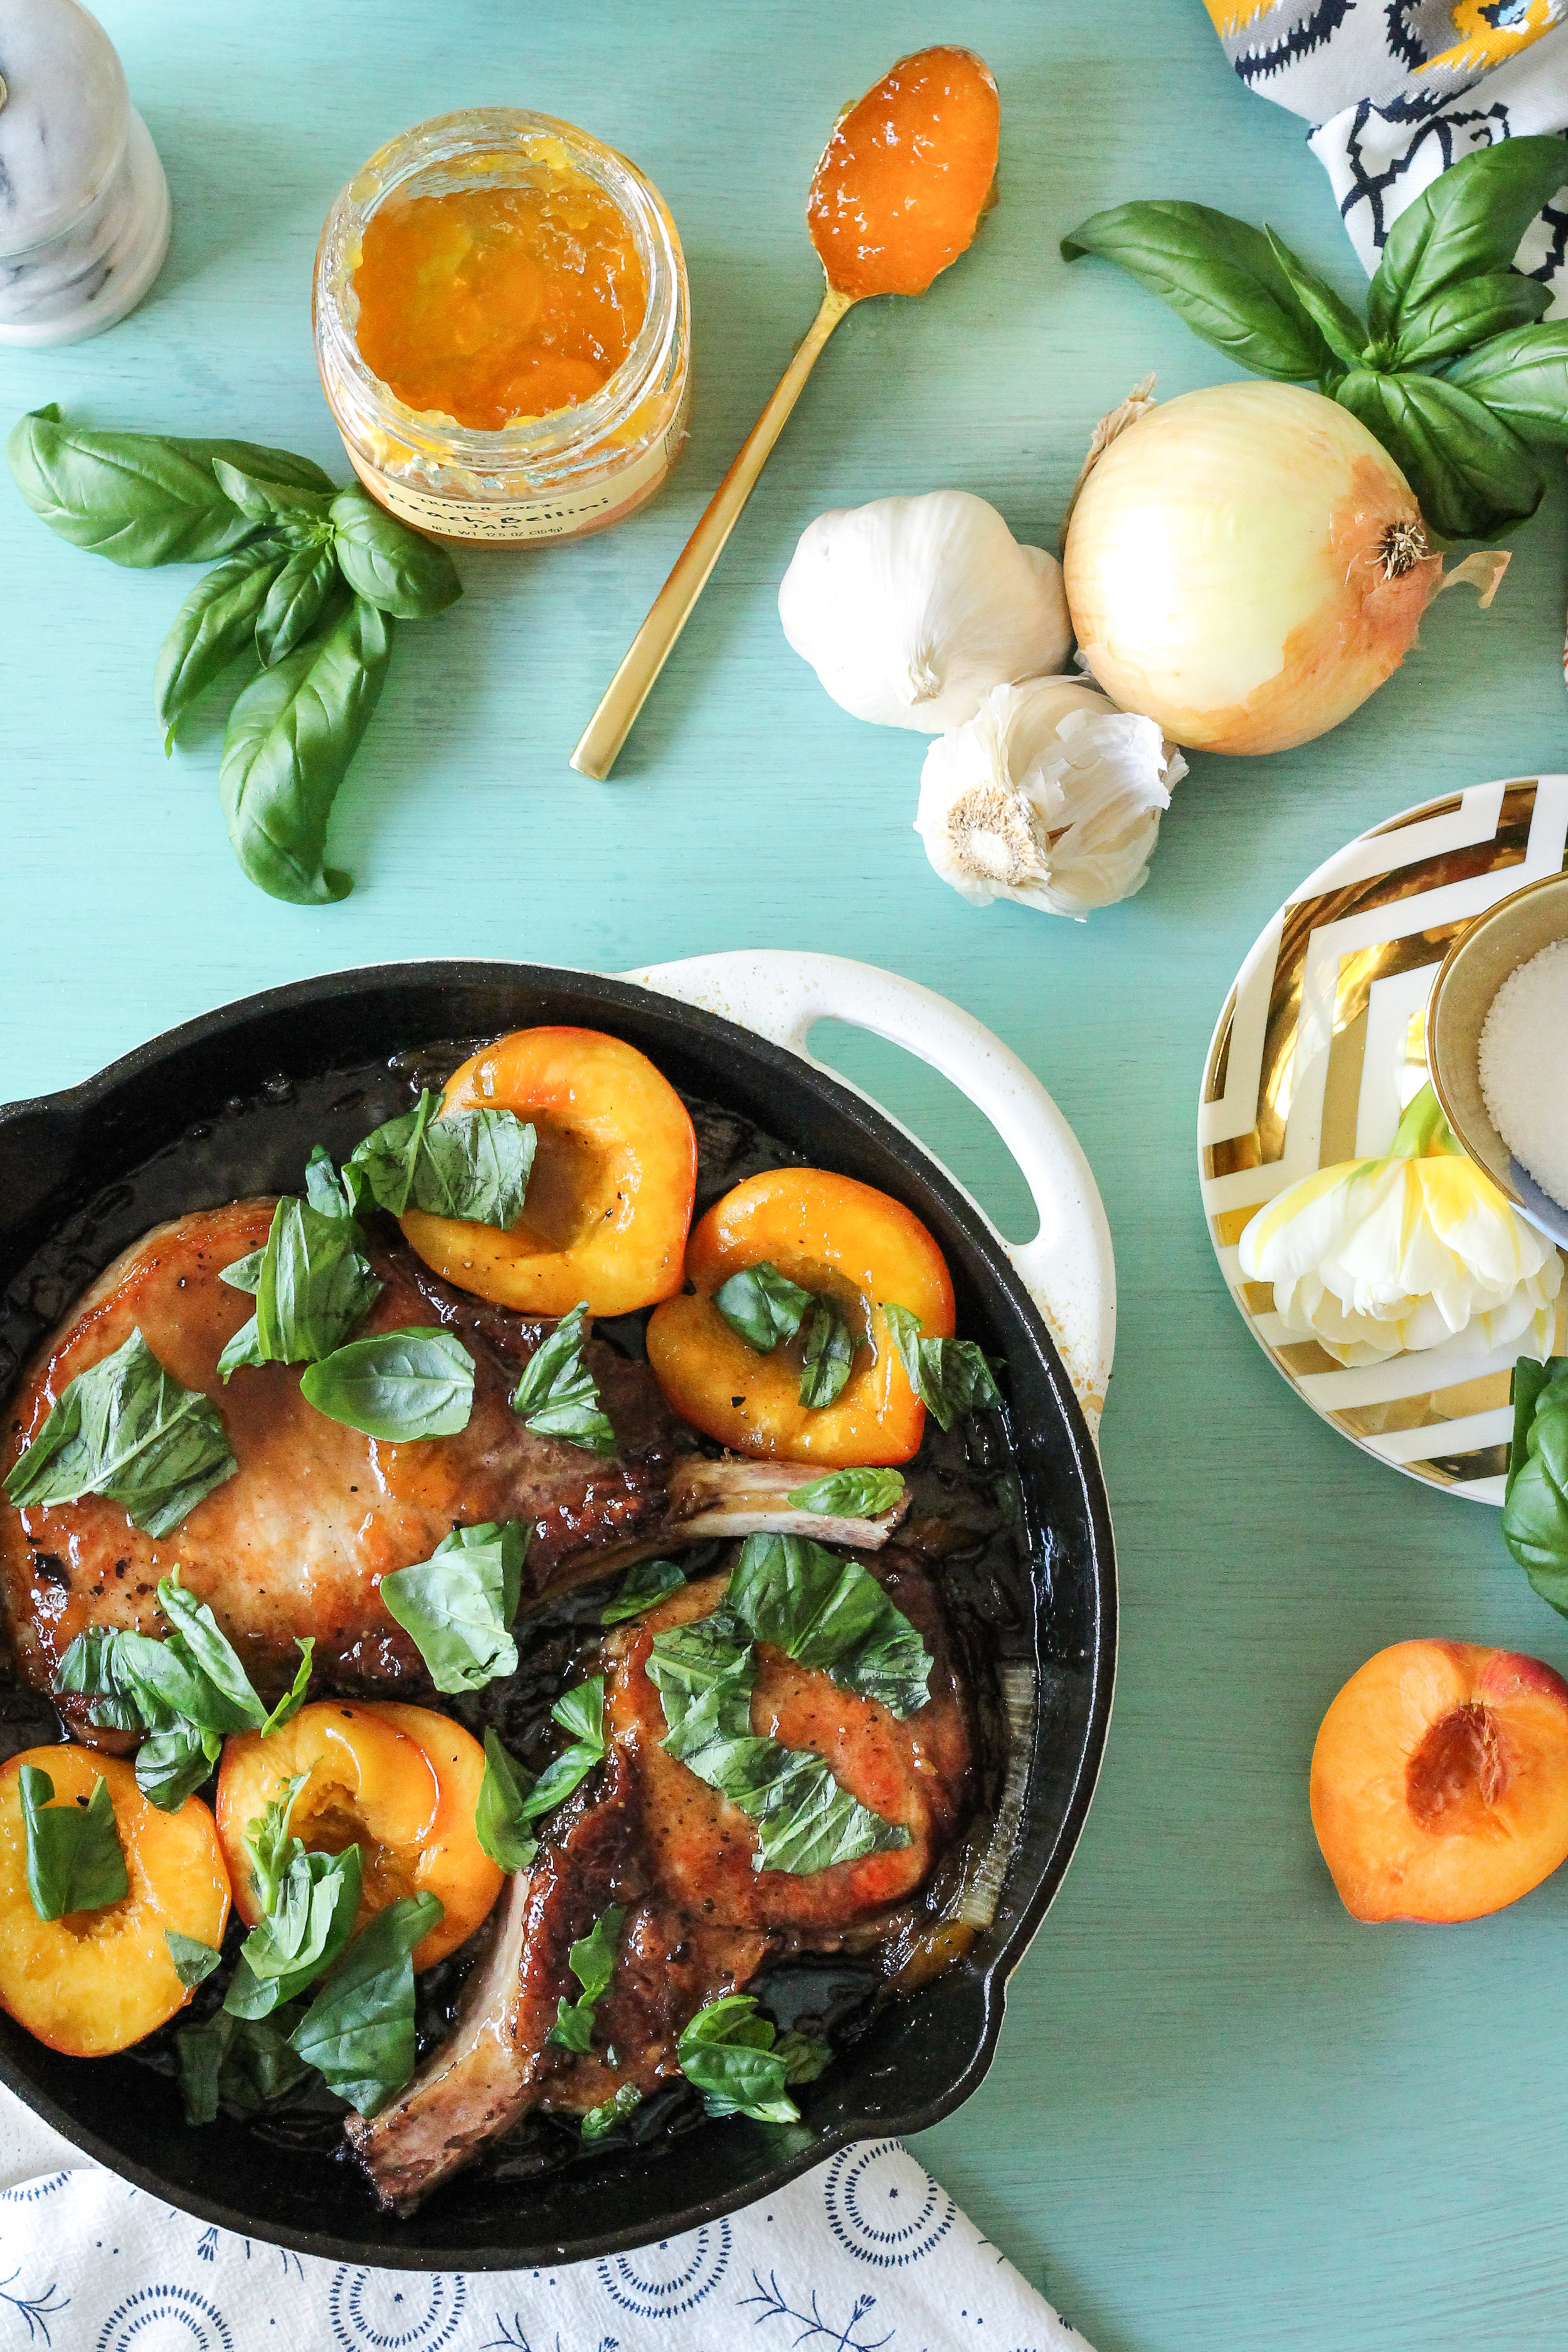 These Fresh Peach & Basil Pork Chops are the perfect sweet and savory summer dinner!  Find the recipe on www.pedanticfoodie.com!